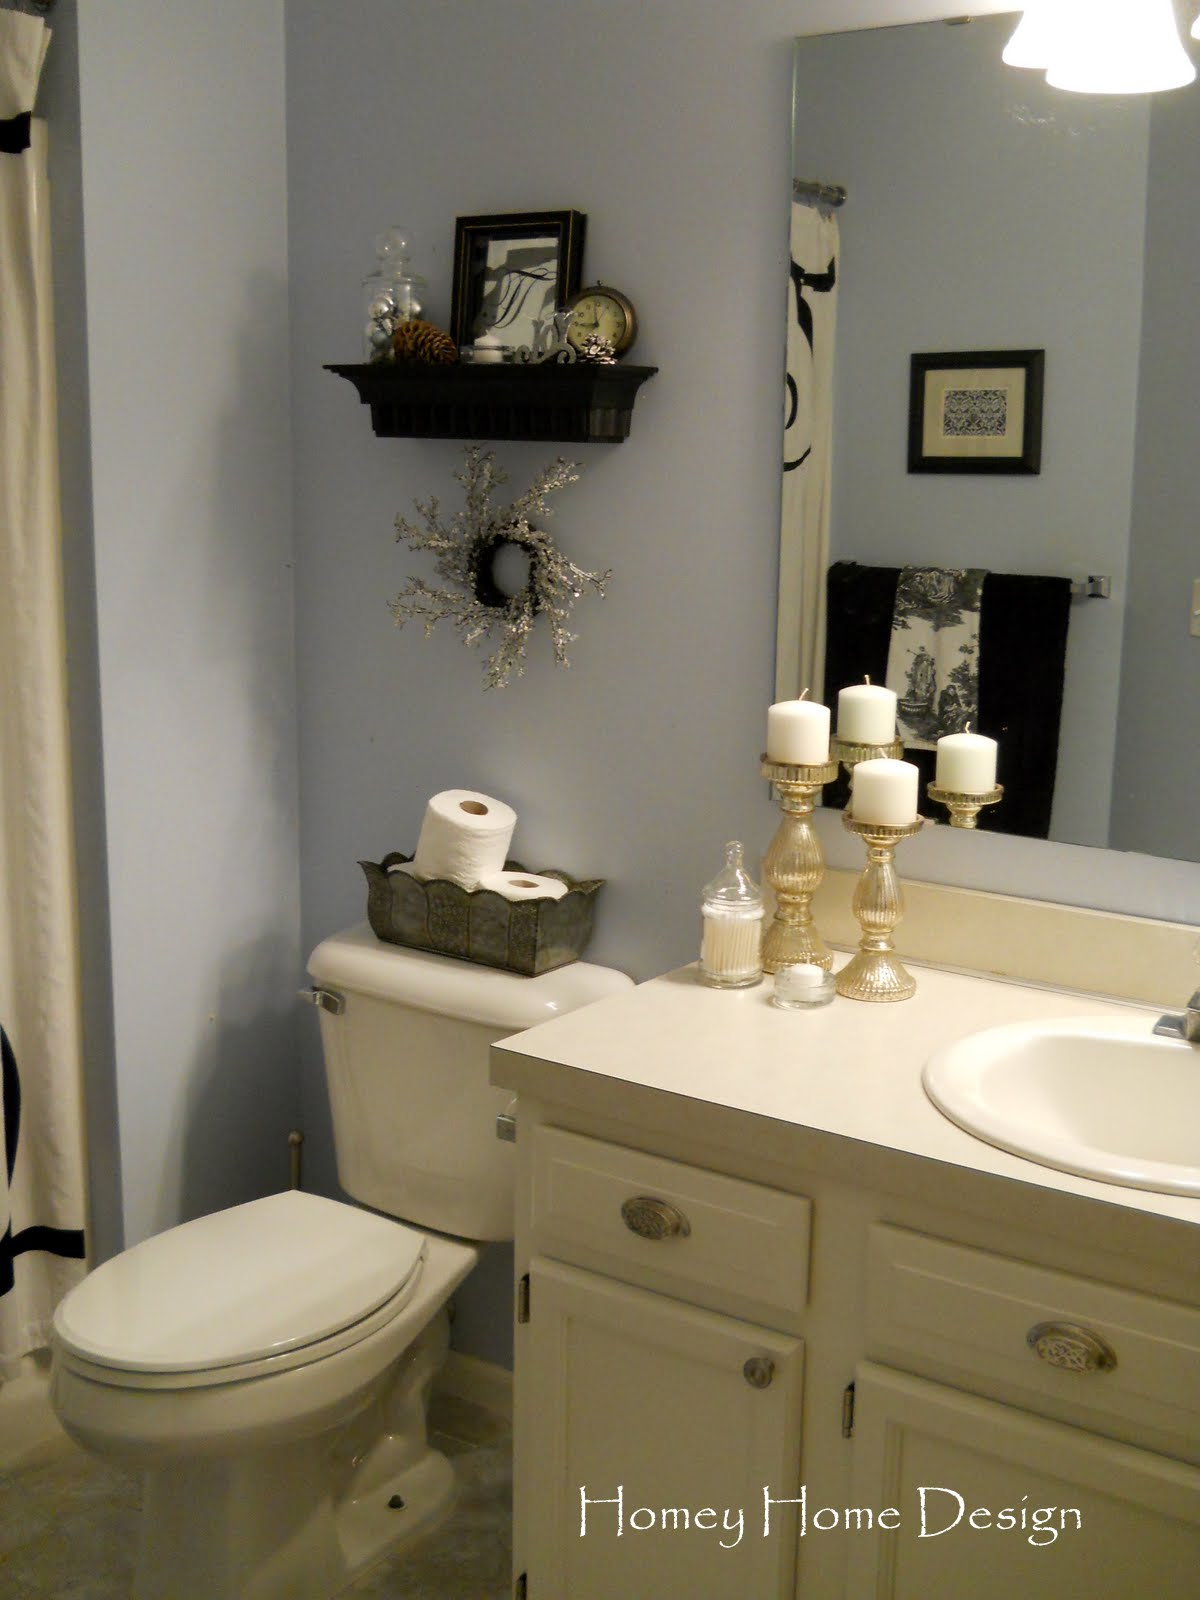 Homey home design christmas in the bathroom - How to decorate your bathroom ...